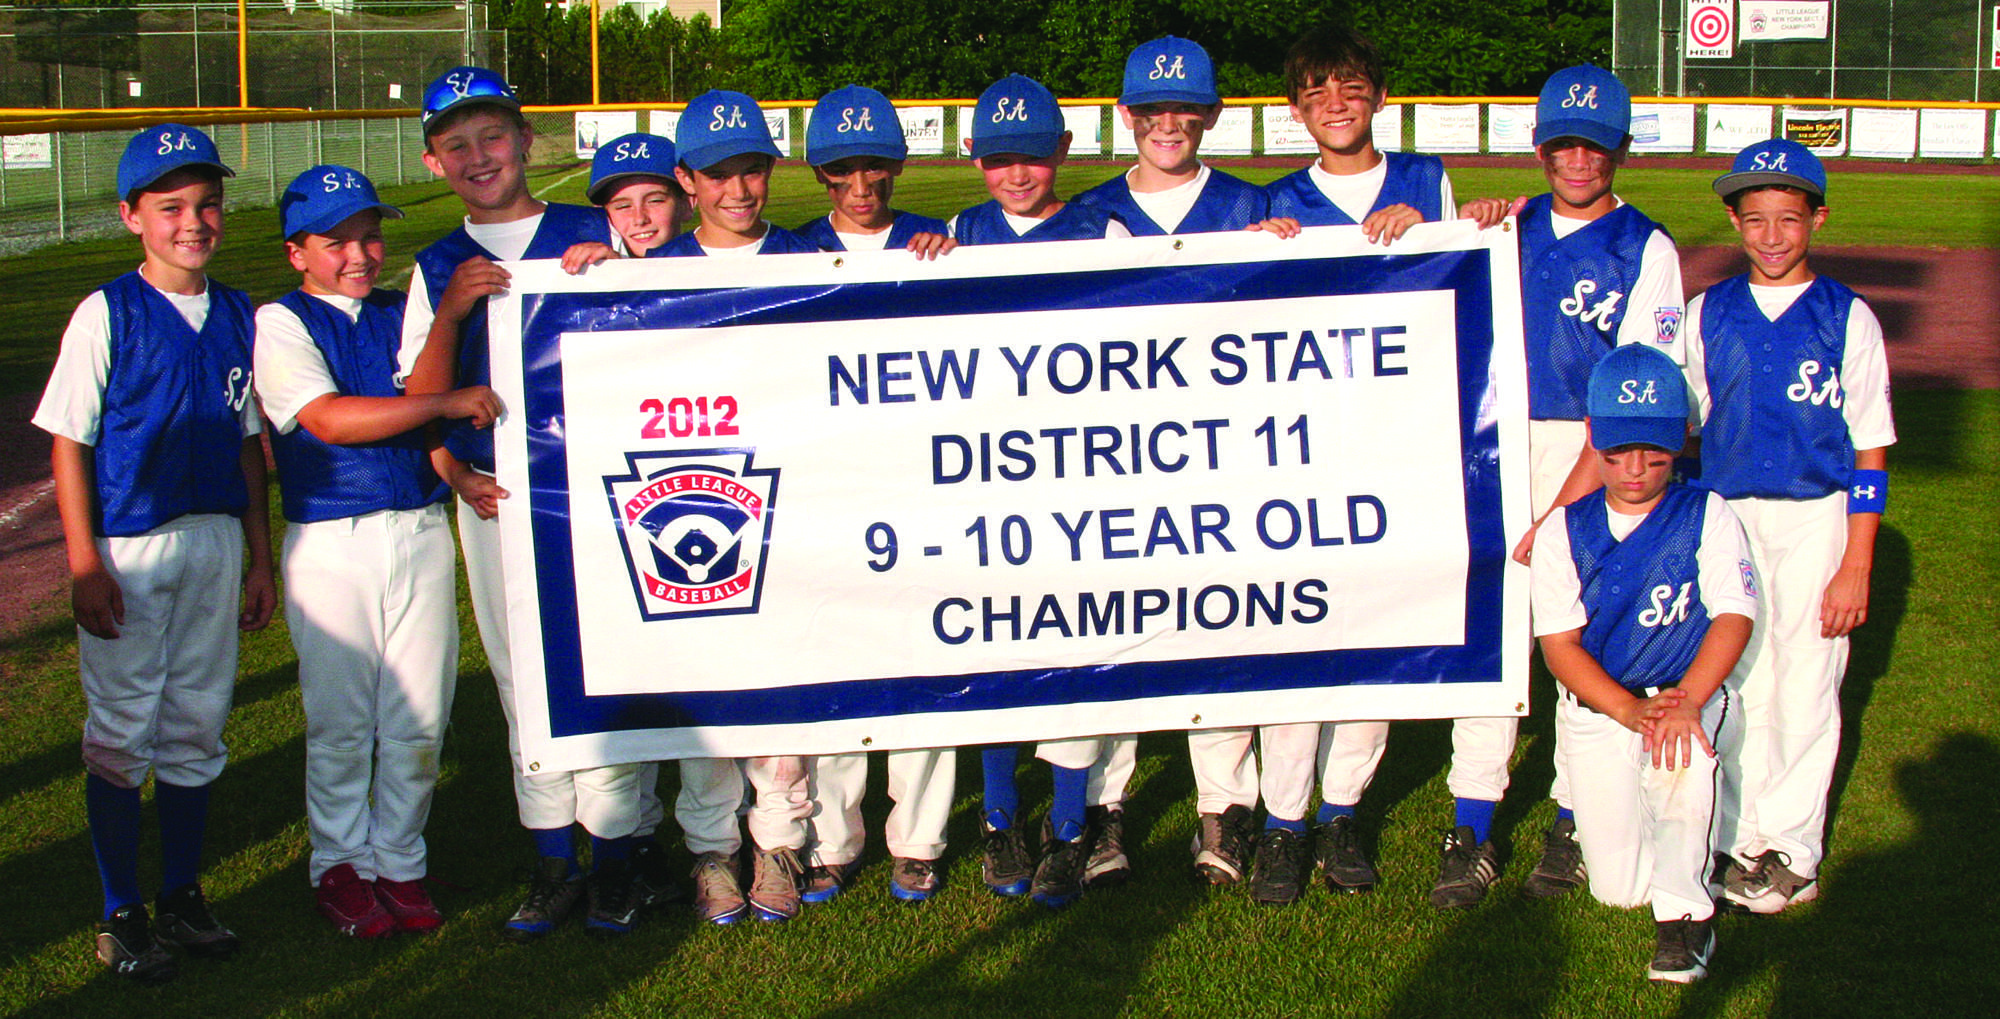 Youth Baseball Saratoga American Little League 9 And 10 Year Olds Win District 11 Championship Little League Youth Baseball 10 Year Old